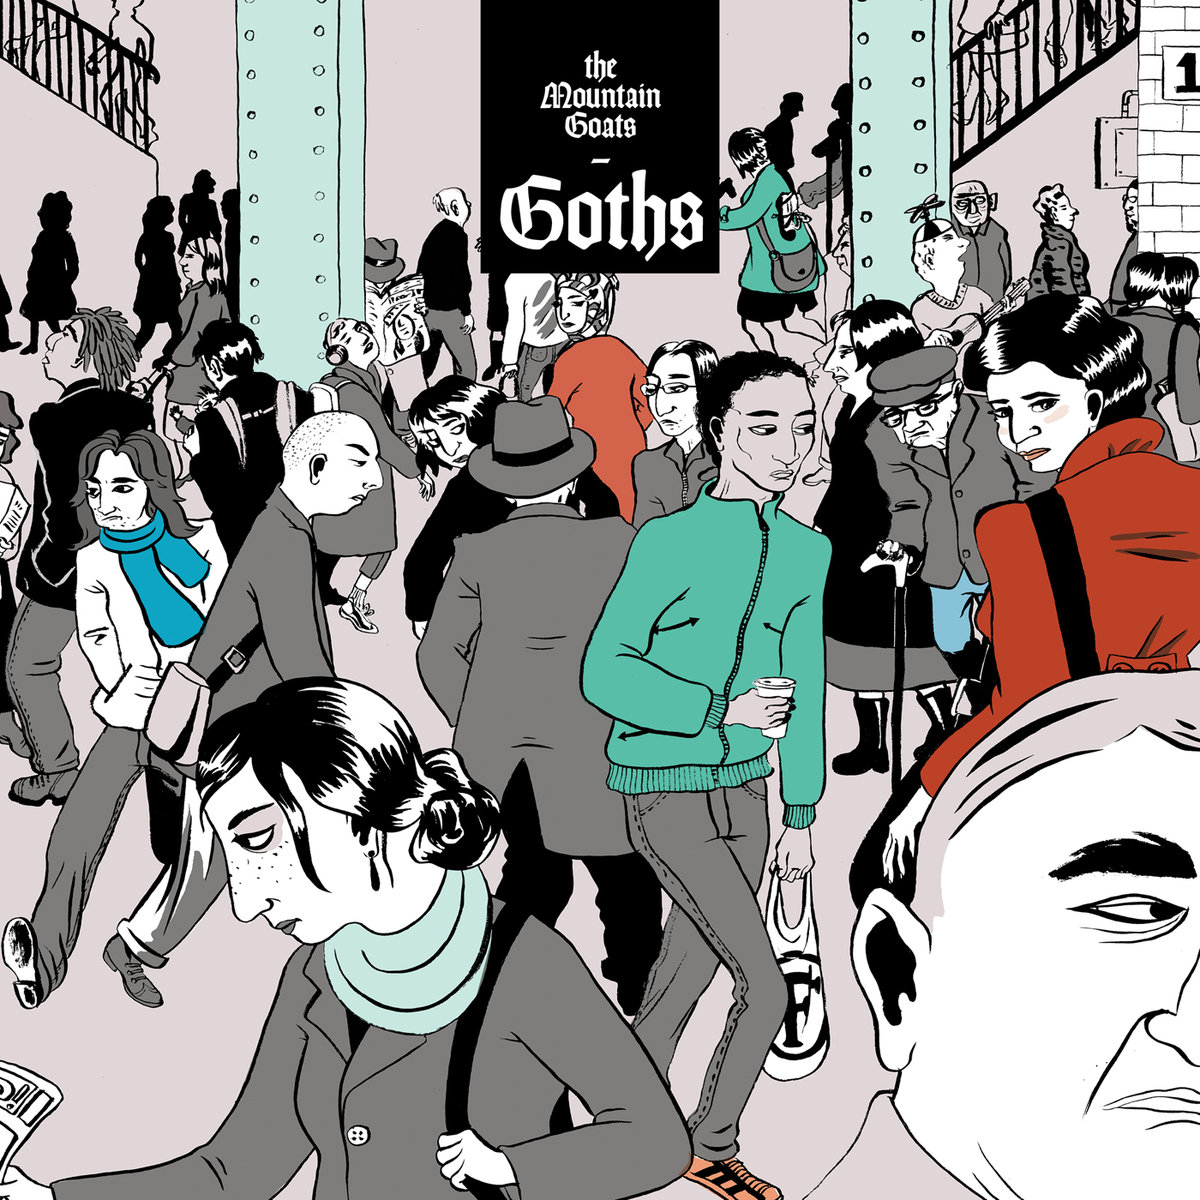 a0944814212 10 The Mountain Goats announce new album, Goths, share Andrew Eldritch is Moving Back to Leeds    listen